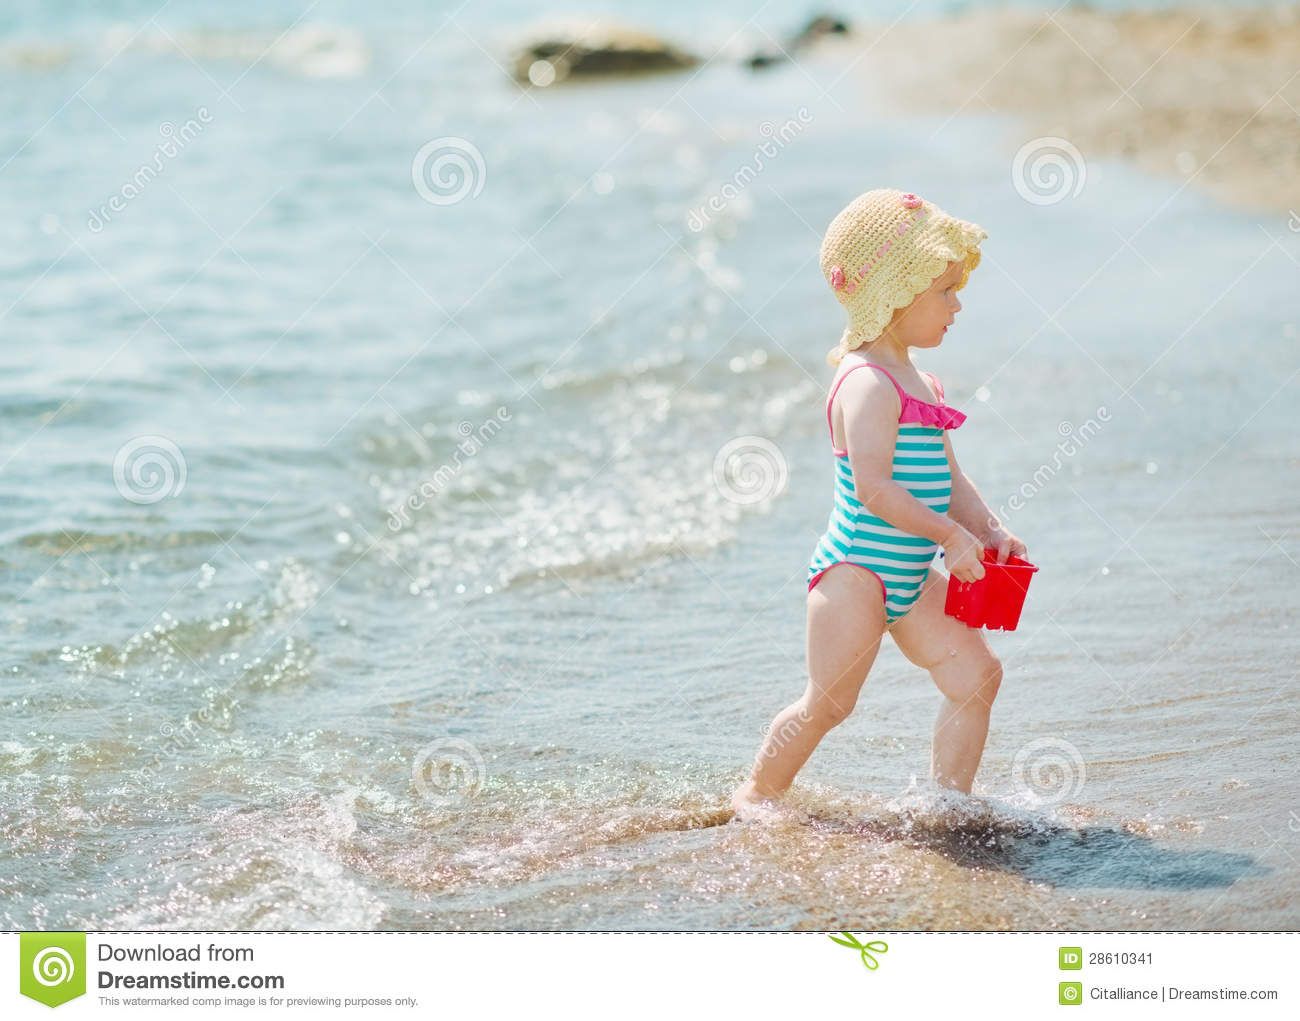 Baby playing with pail on seashore